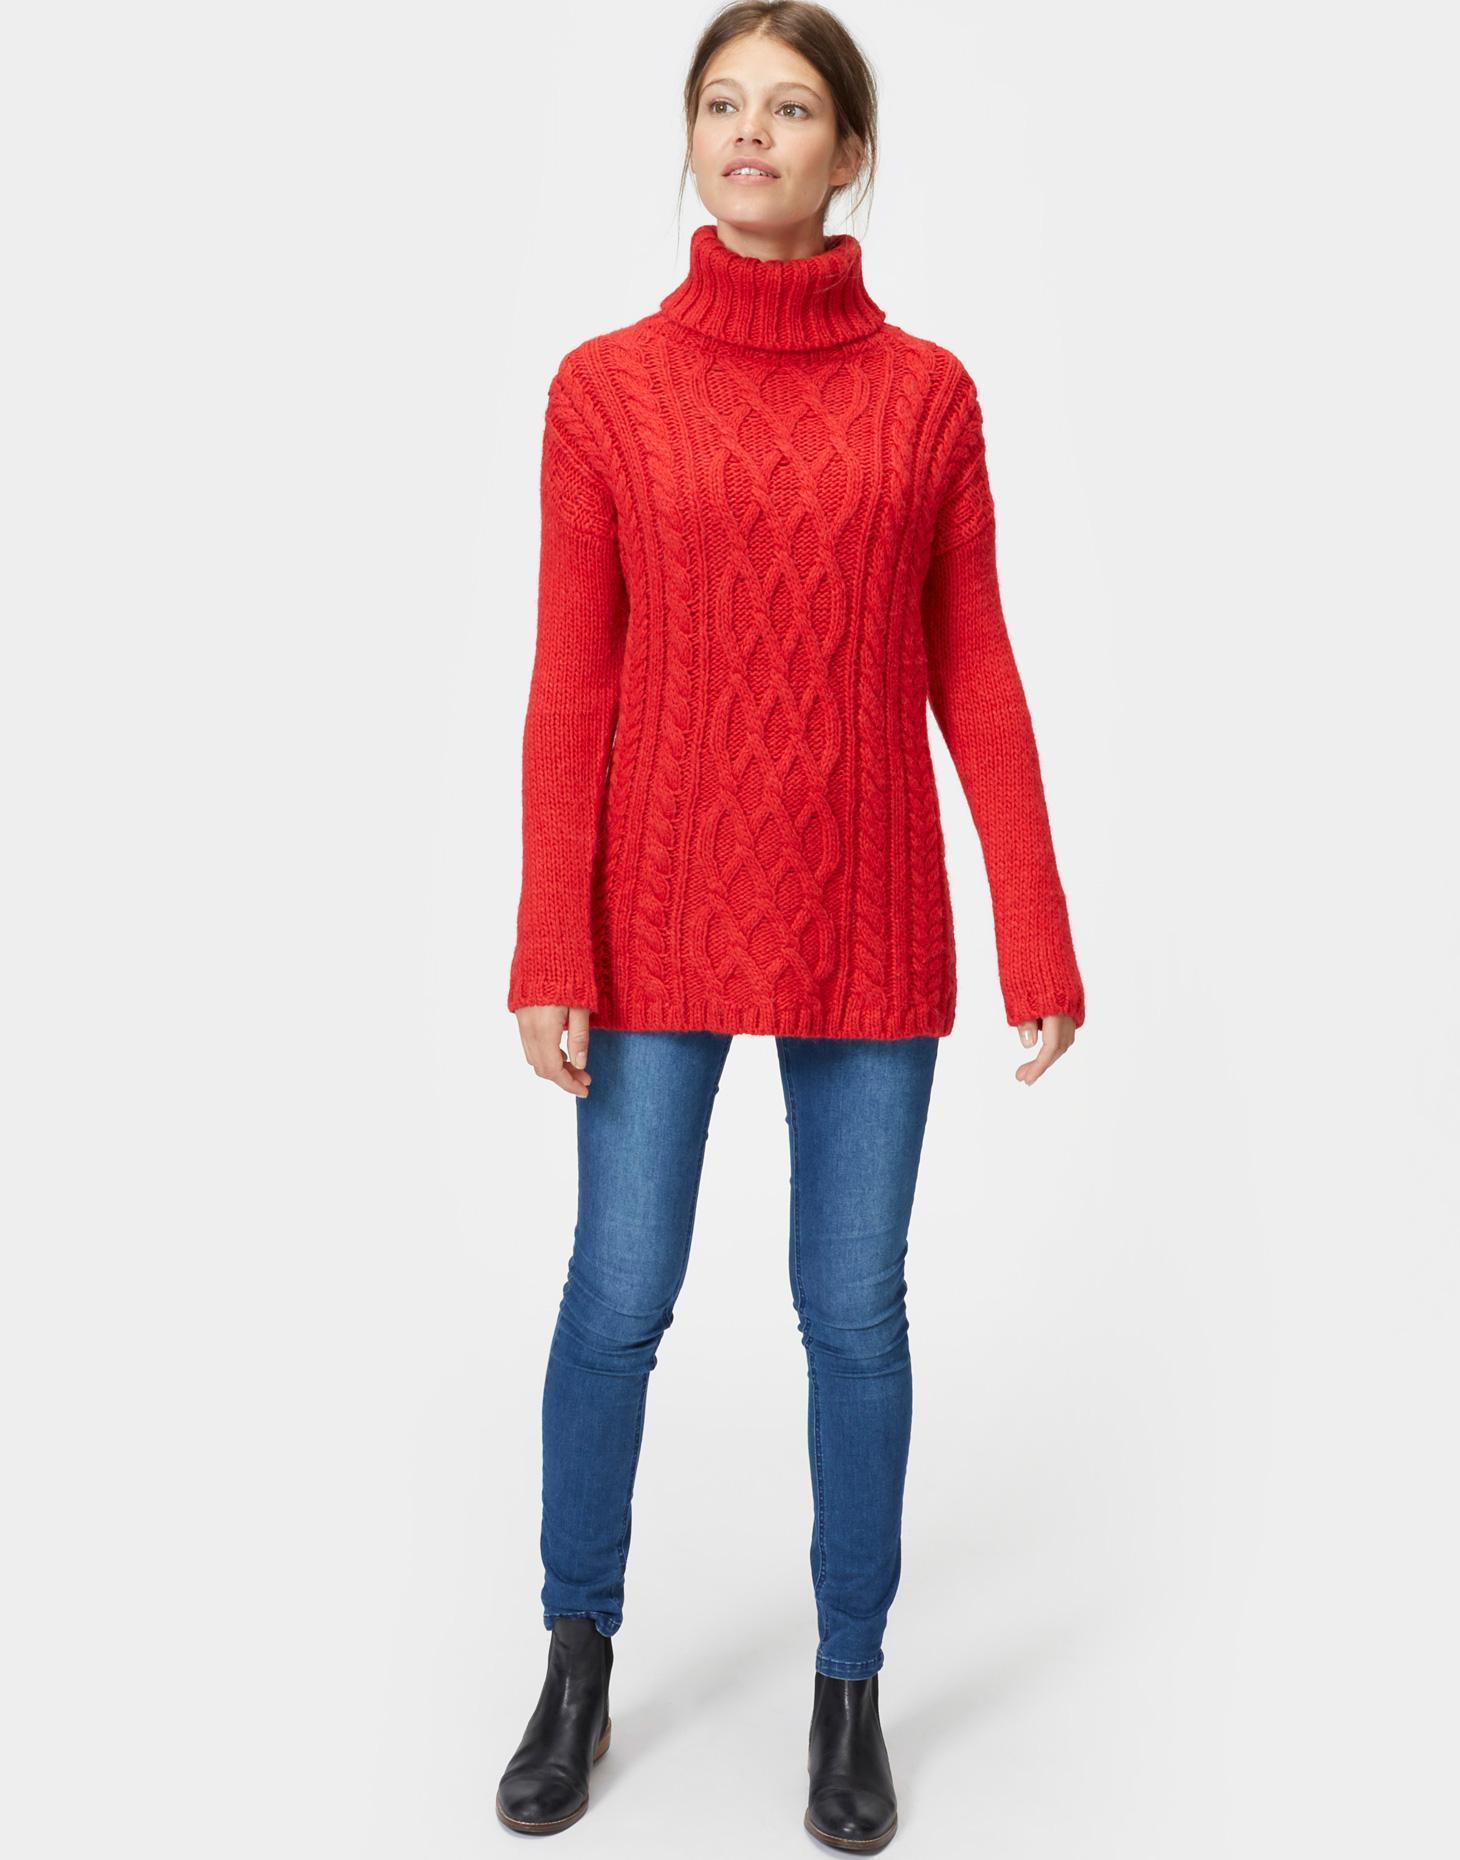 Joules | QUINBY Cable Knit Jumper | Women's sweaters | HighCollars